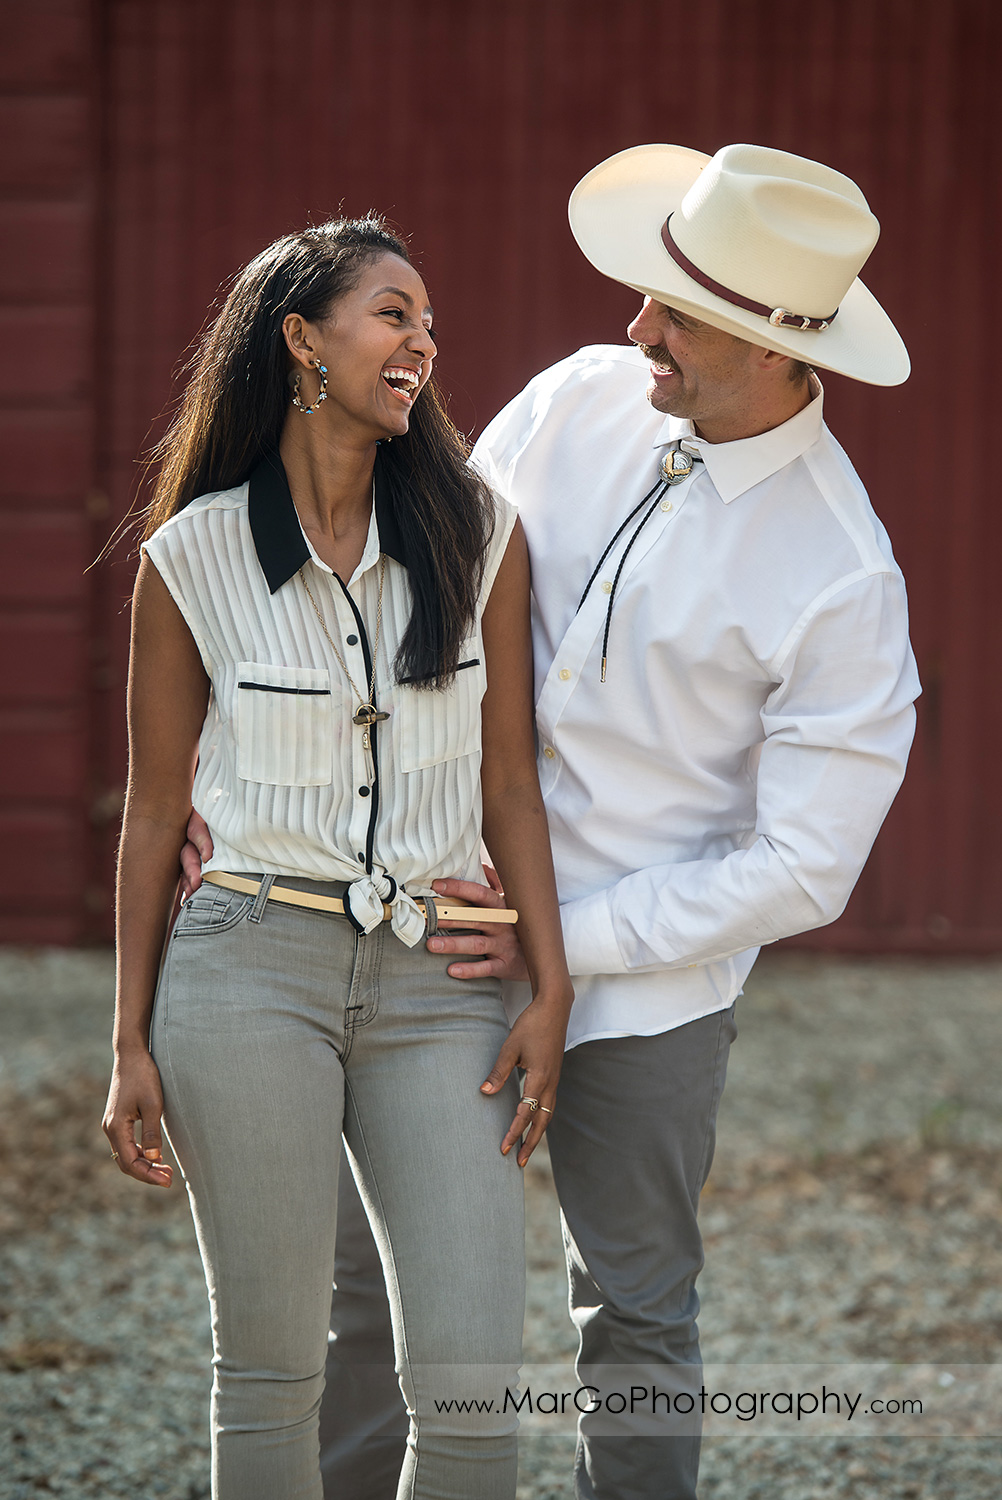 woman in white top and gray jeans and man in white shirt gray jeans and cowboy hat laughing in front of the red wooden barn in Shinn Historical Park and Arboretum in Fremont